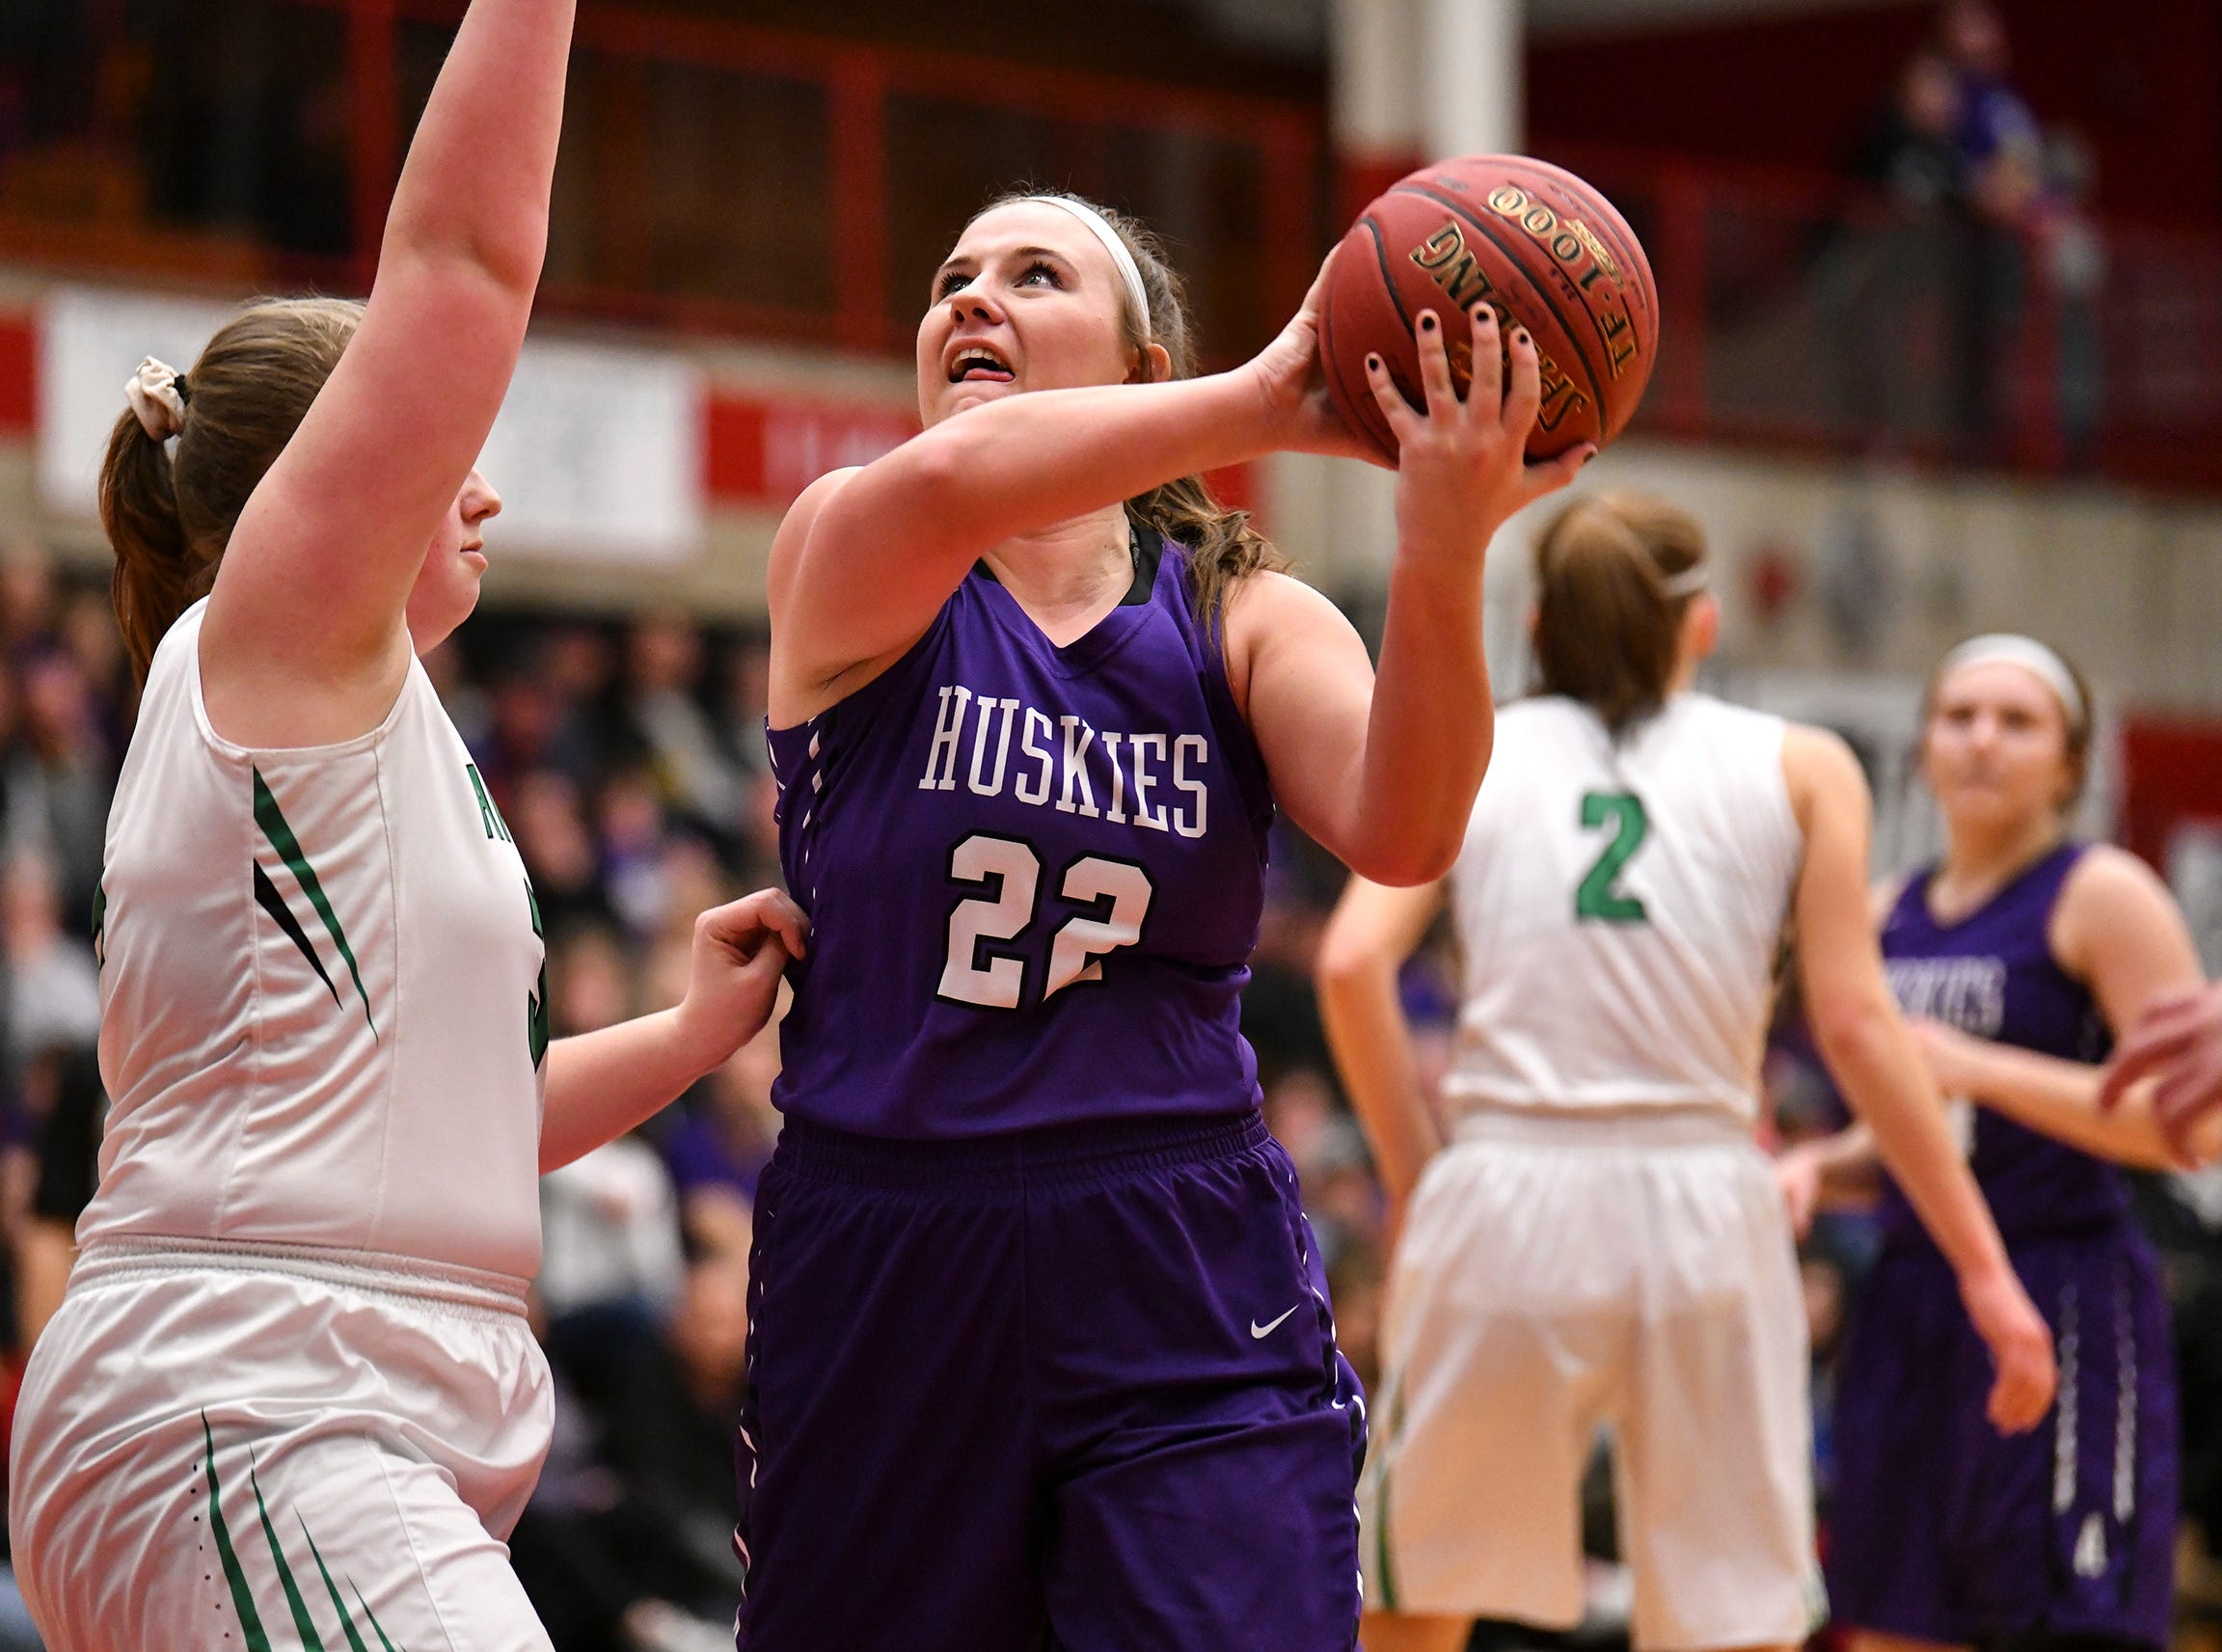 Albany's Breanna Mellesmoen puts up a shot  during the Section 6-2A championship game against Pine City Friday, March 8, at Halenbeck Hall in St. Cloud.